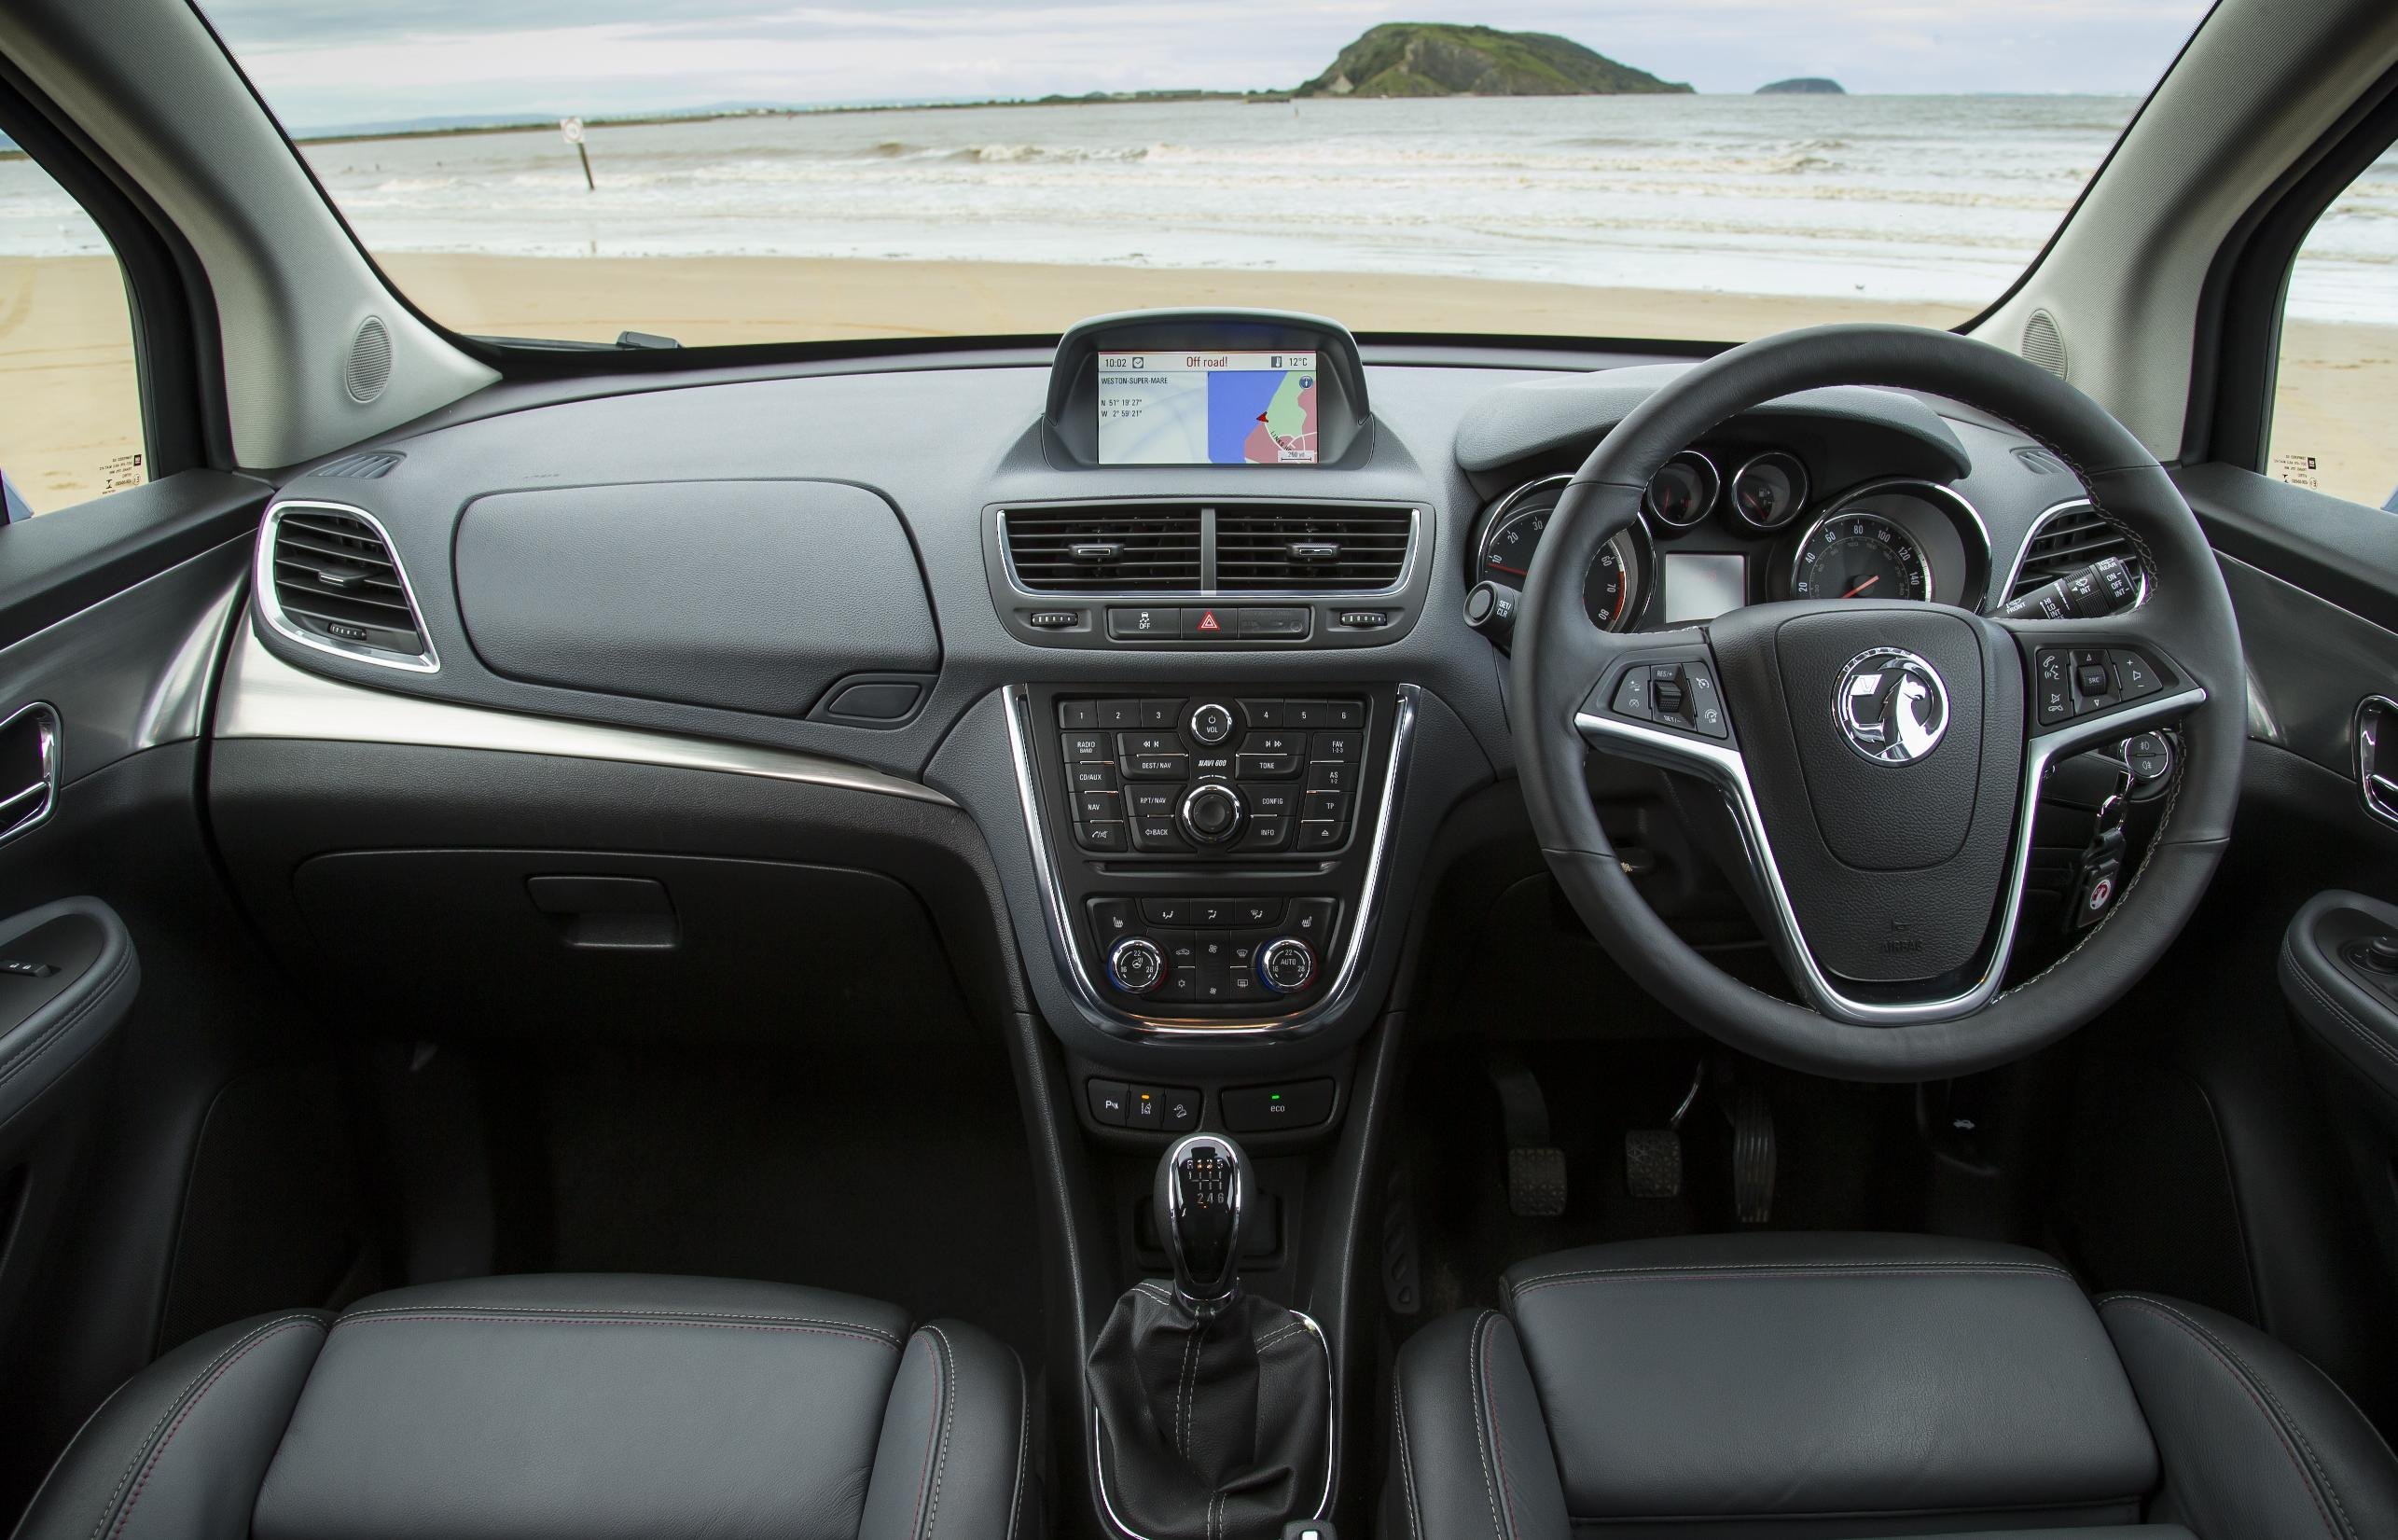 Vauxhall Mokka dashboard interior